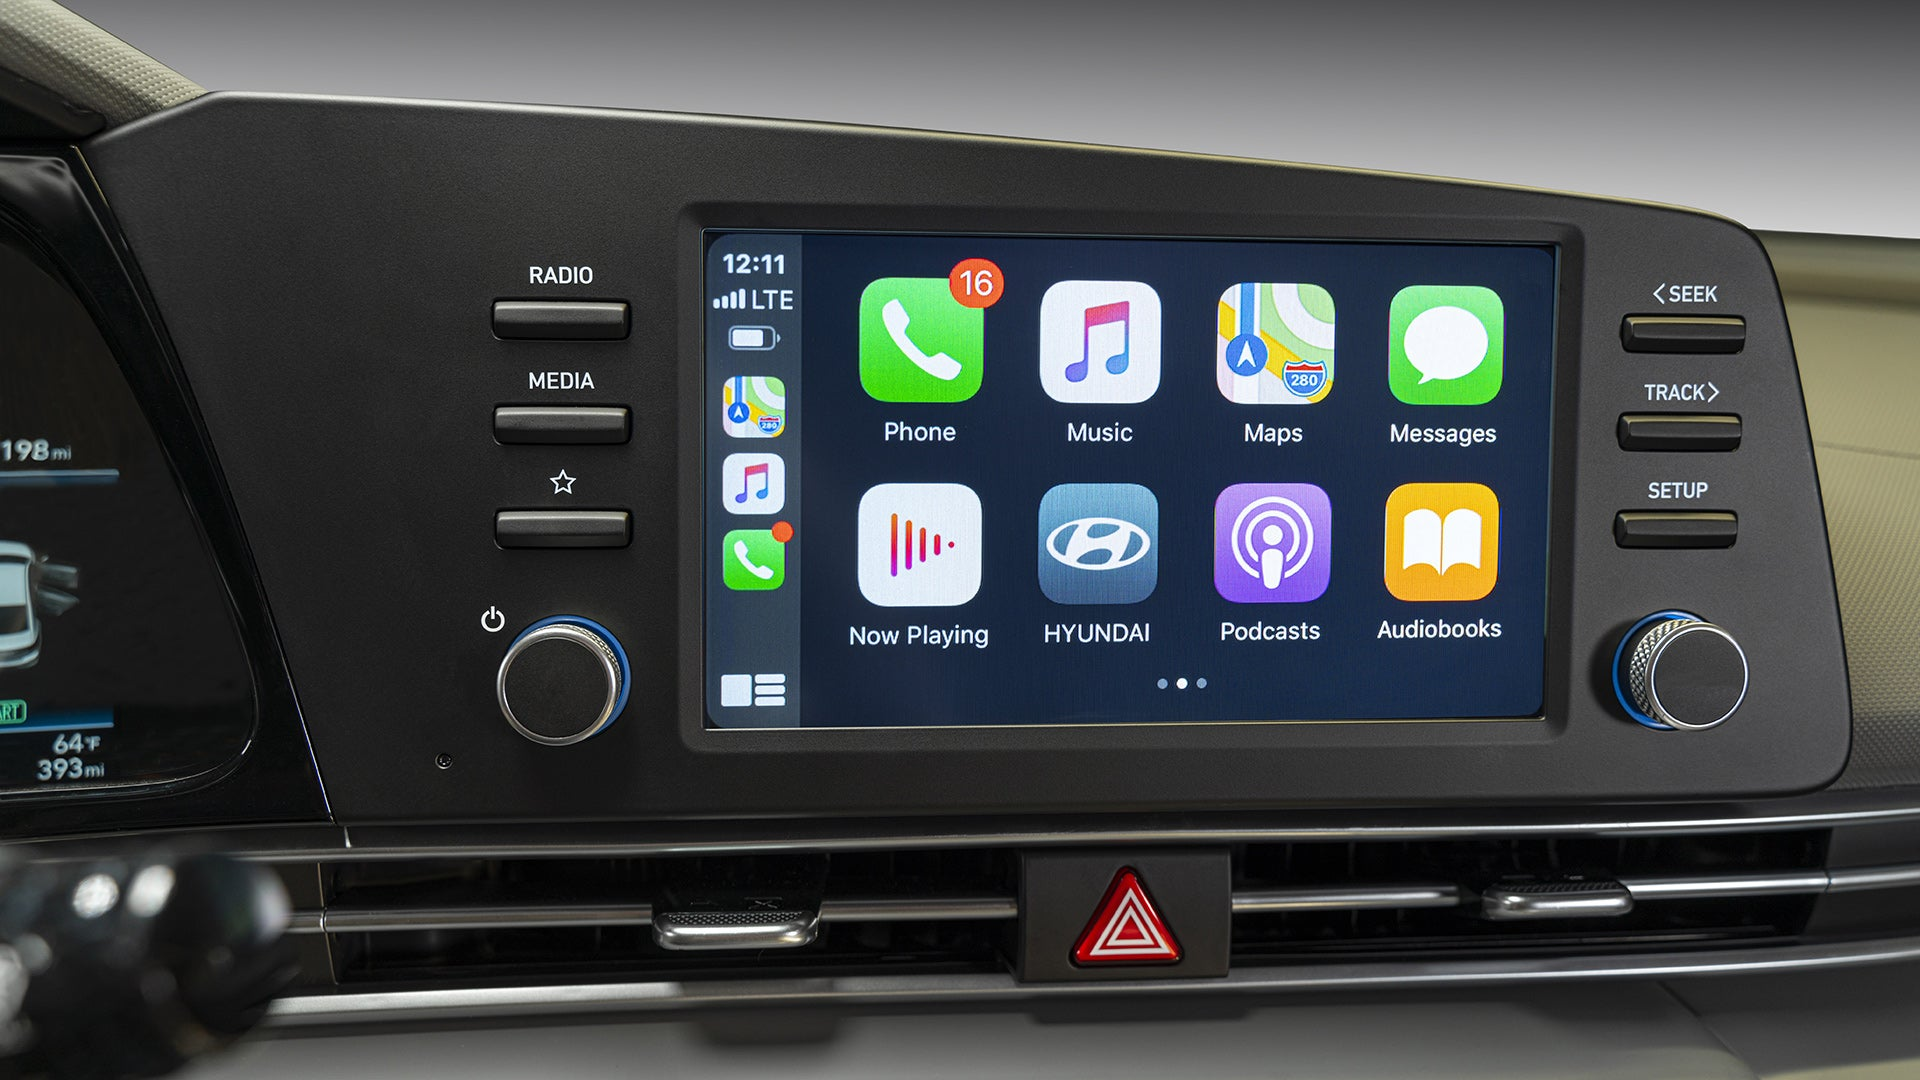 Apple CarPlay on a digital touchscreen.